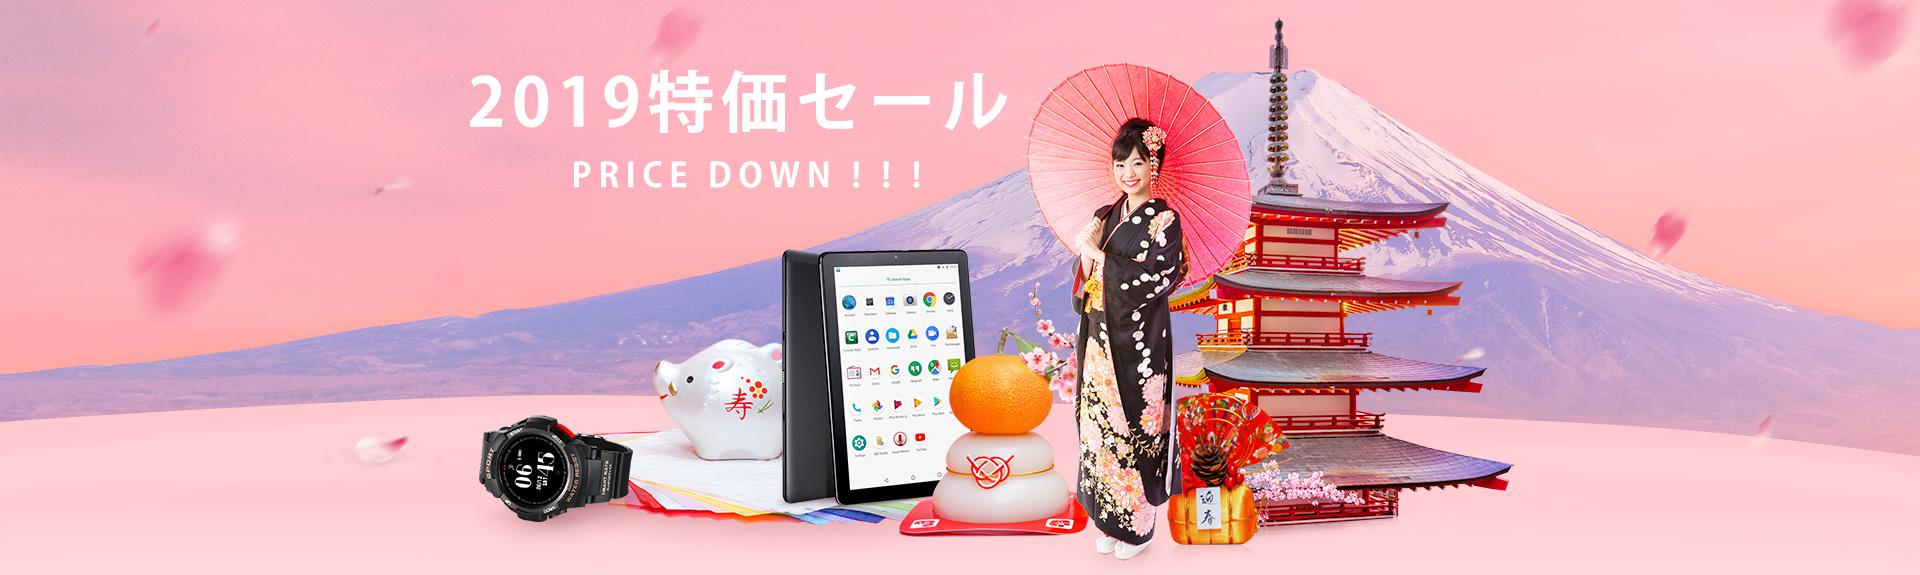 GearBest 日本専用クーポンセール